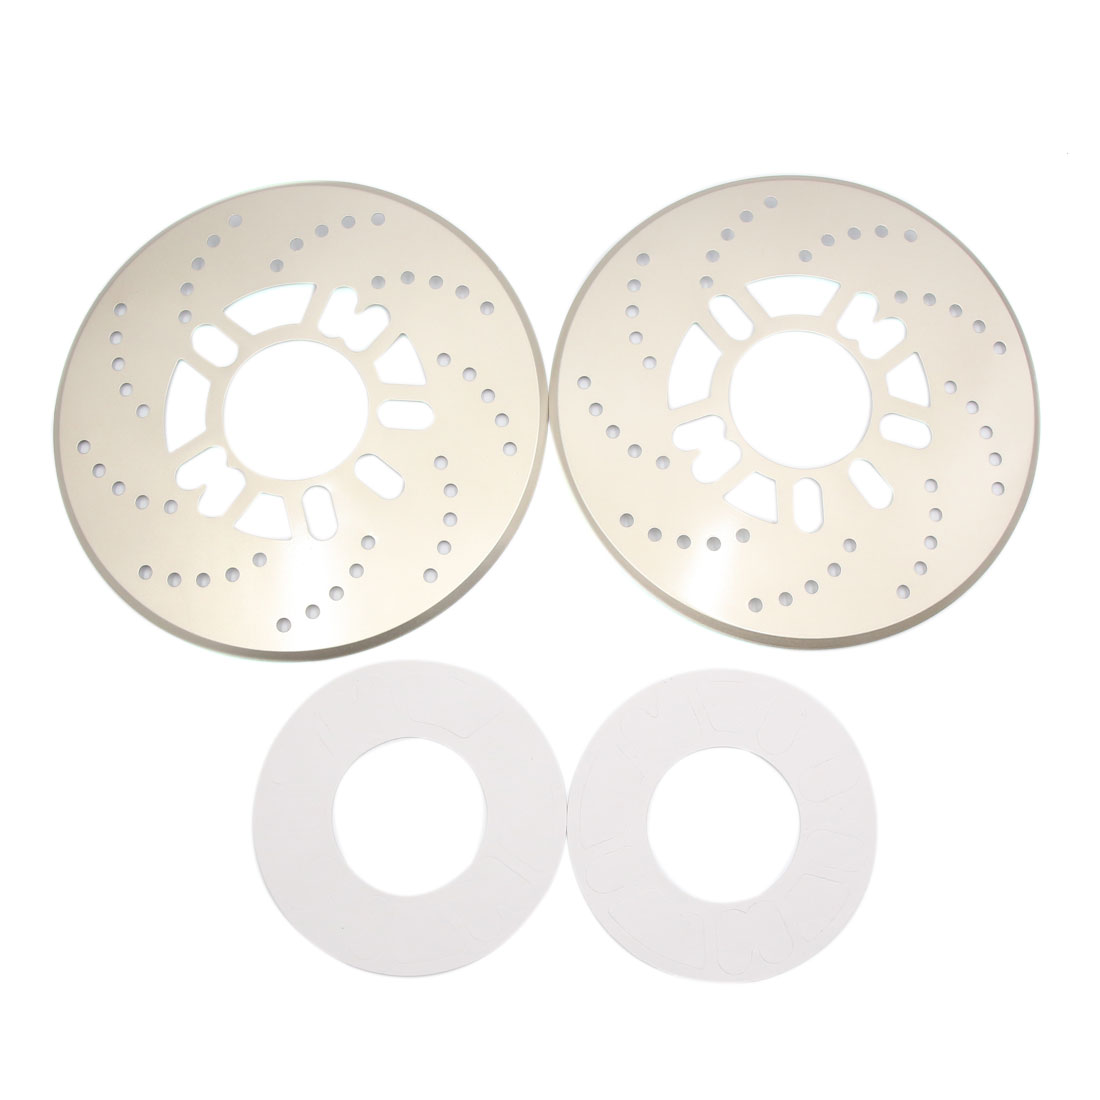 2Pcs Gold Tone Metal Vehcile Car Wheel Disc Brake Racing Cover Decoration